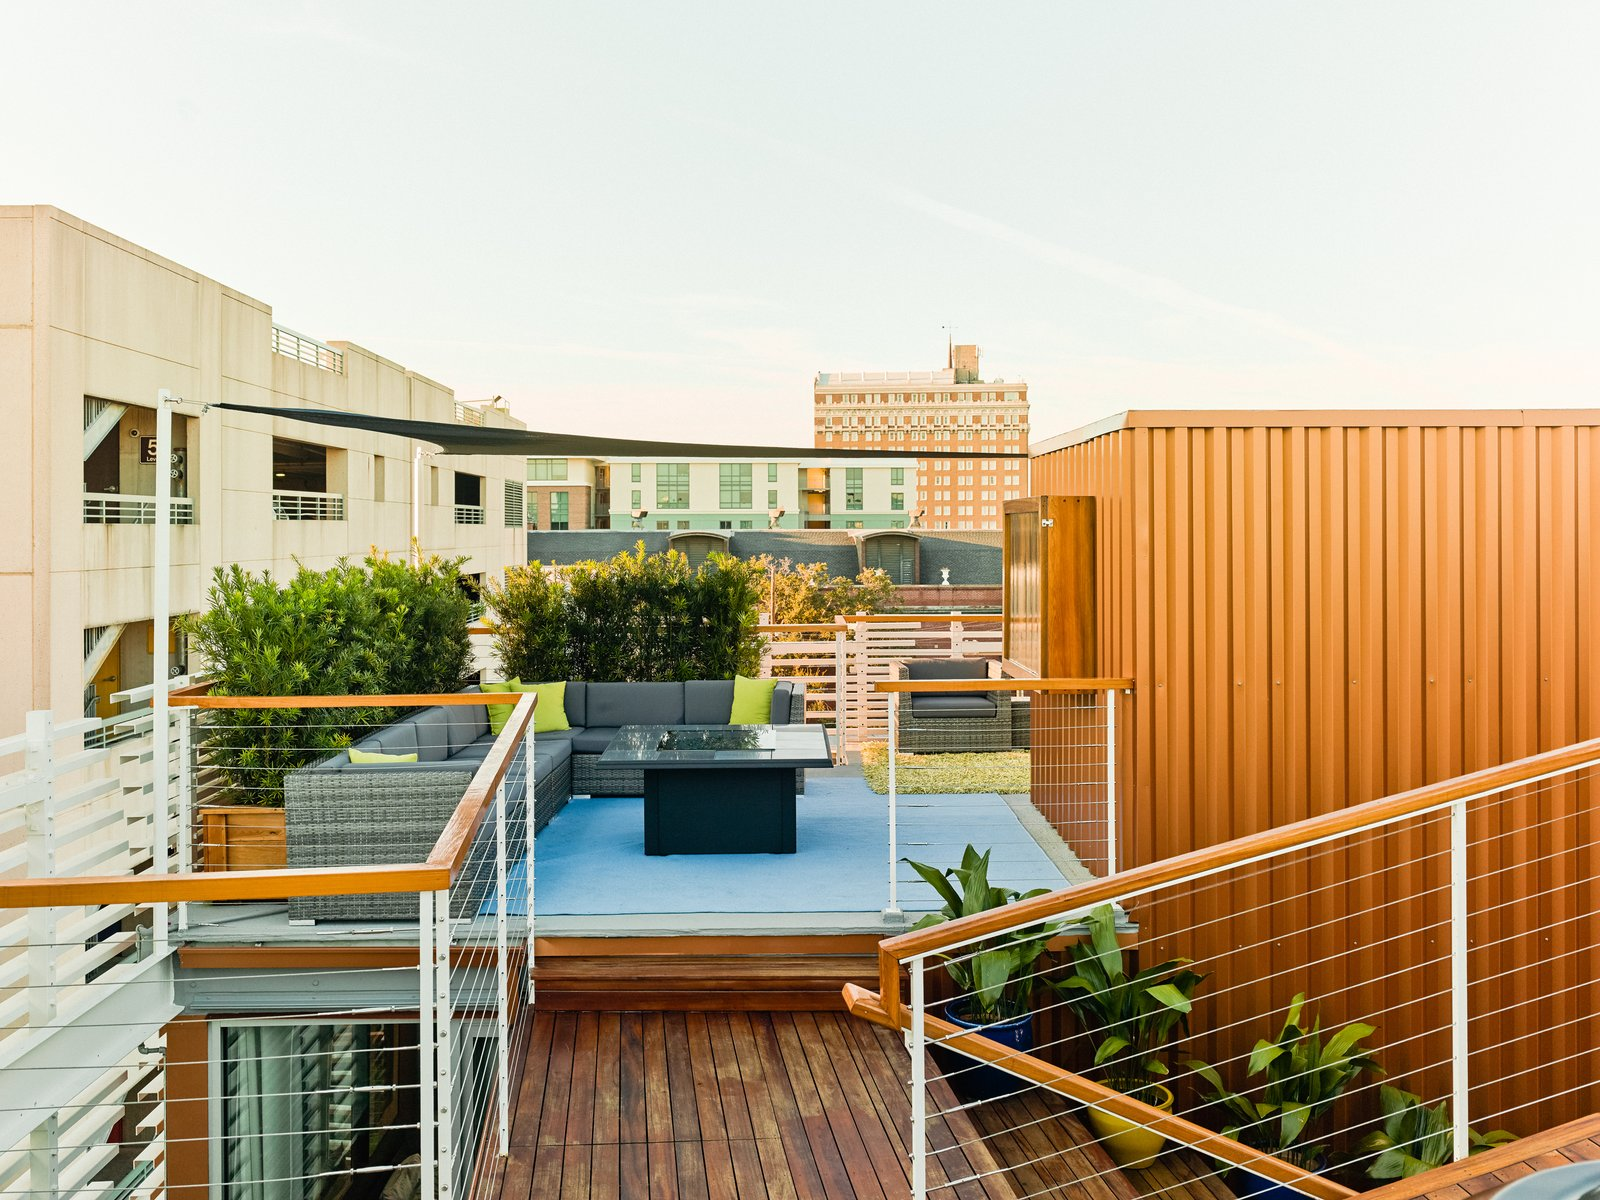 Tagged: Outdoor, Rooftop, Shrubs, Raised Planters, Small Pools, Tubs, Shower, Small Patio, Porch, Deck, Wood Fences, Wall, Decking Patio, Porch, Deck, Wire Fences, Wall, and Horizontal Fences, Wall.  SKY residence by Kevan Hoertdoerfer Architects